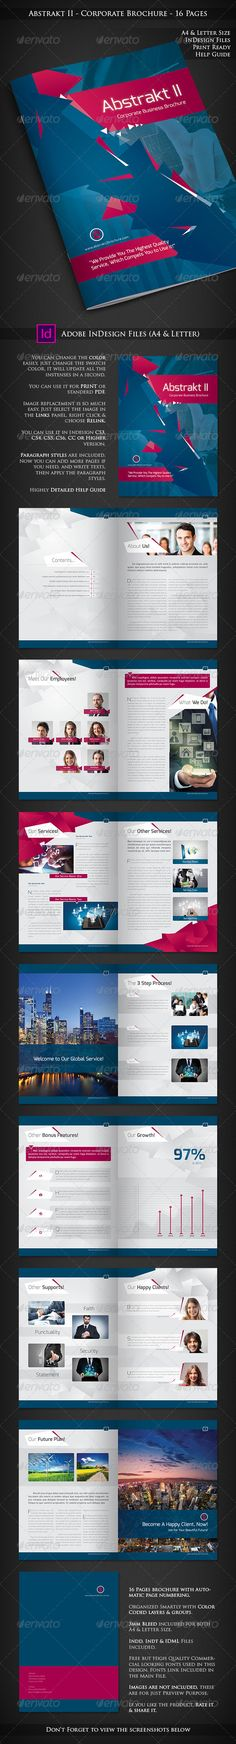 Abstrakt II - Corporate Company Profile - 16 Pages  #corporate #cyan #design • Available here → http://graphicriver.net/item/abstrakt-ii-corporate-company-profile-16-pages/7741702?s_rank=468&ref=pxcr